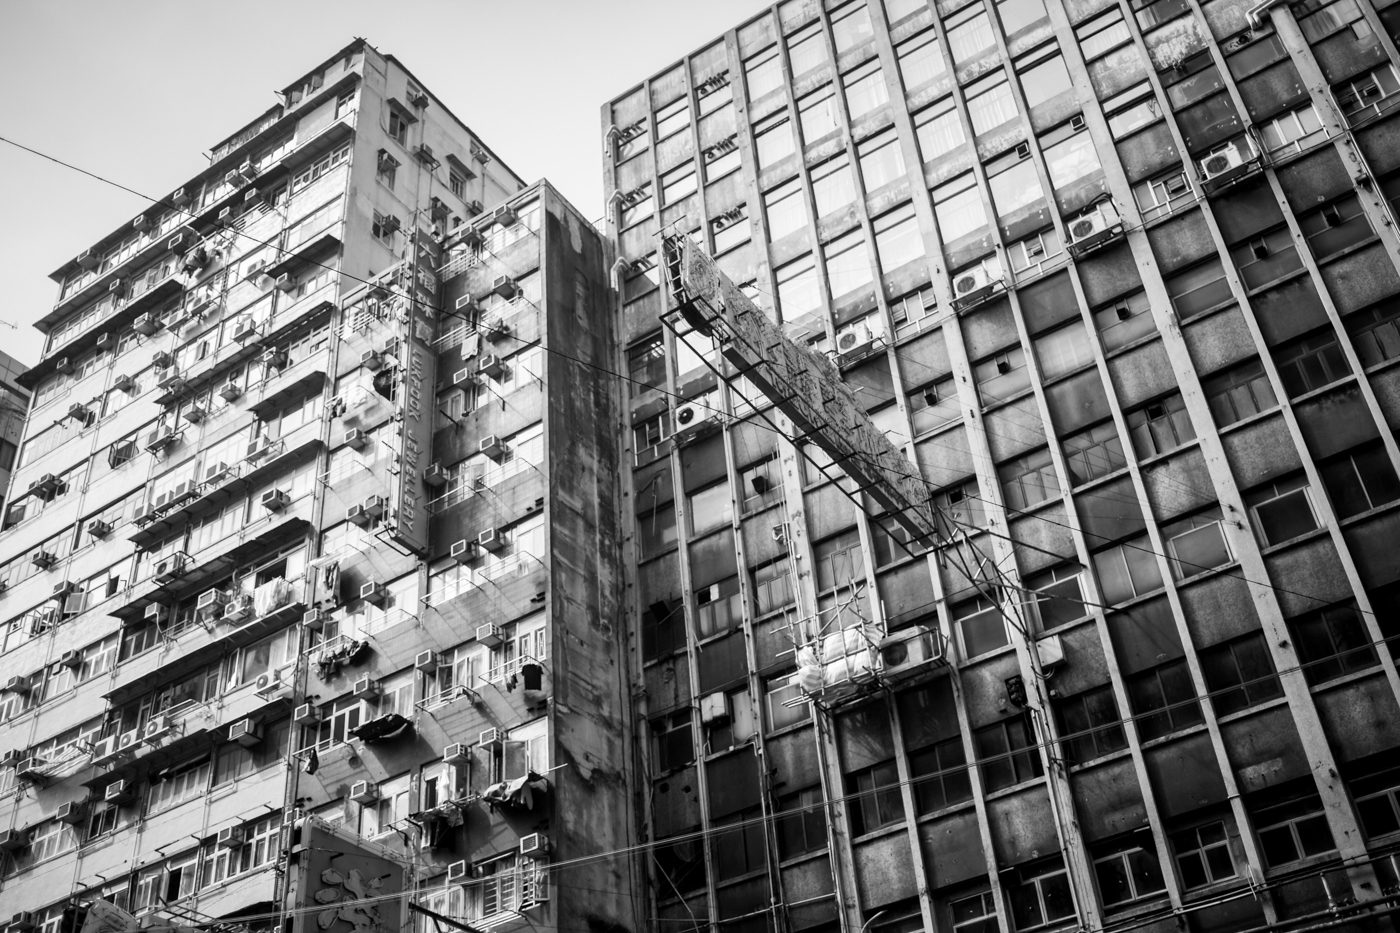 Apartment buildings near our Airbnb in Kowloon, Jordan.